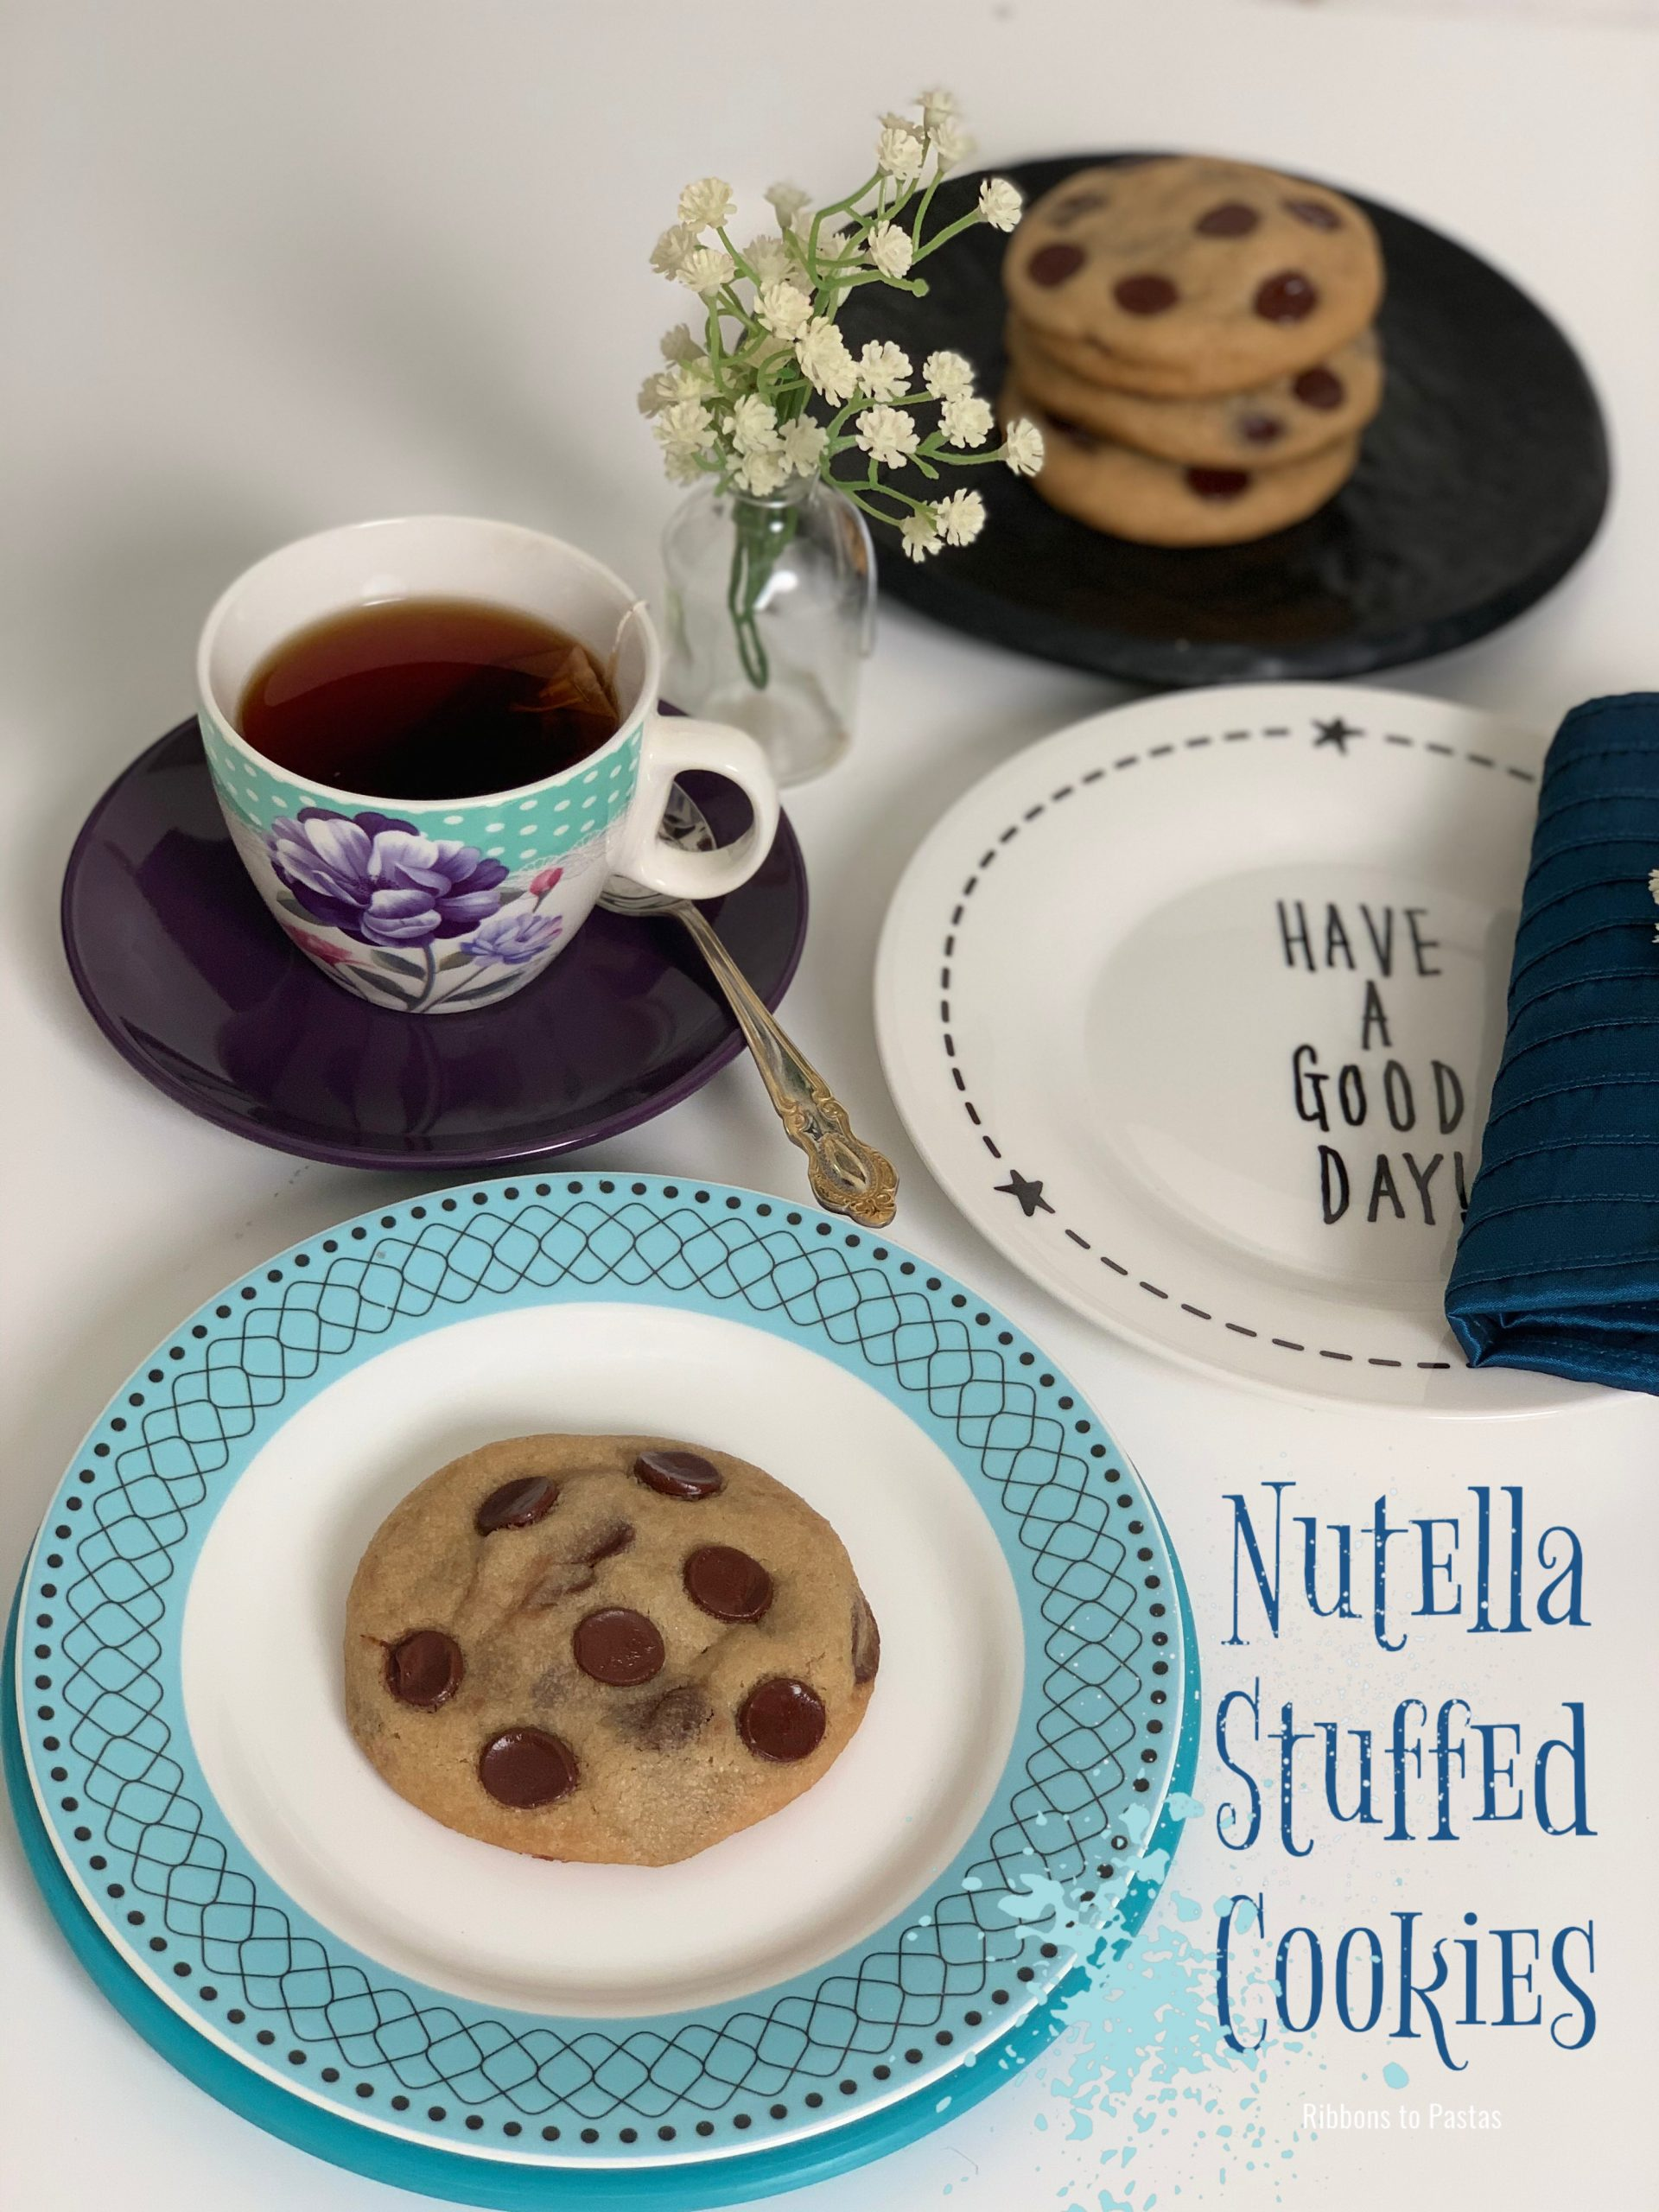 Nutella Stuffed Cookies Ribbons To Pastas